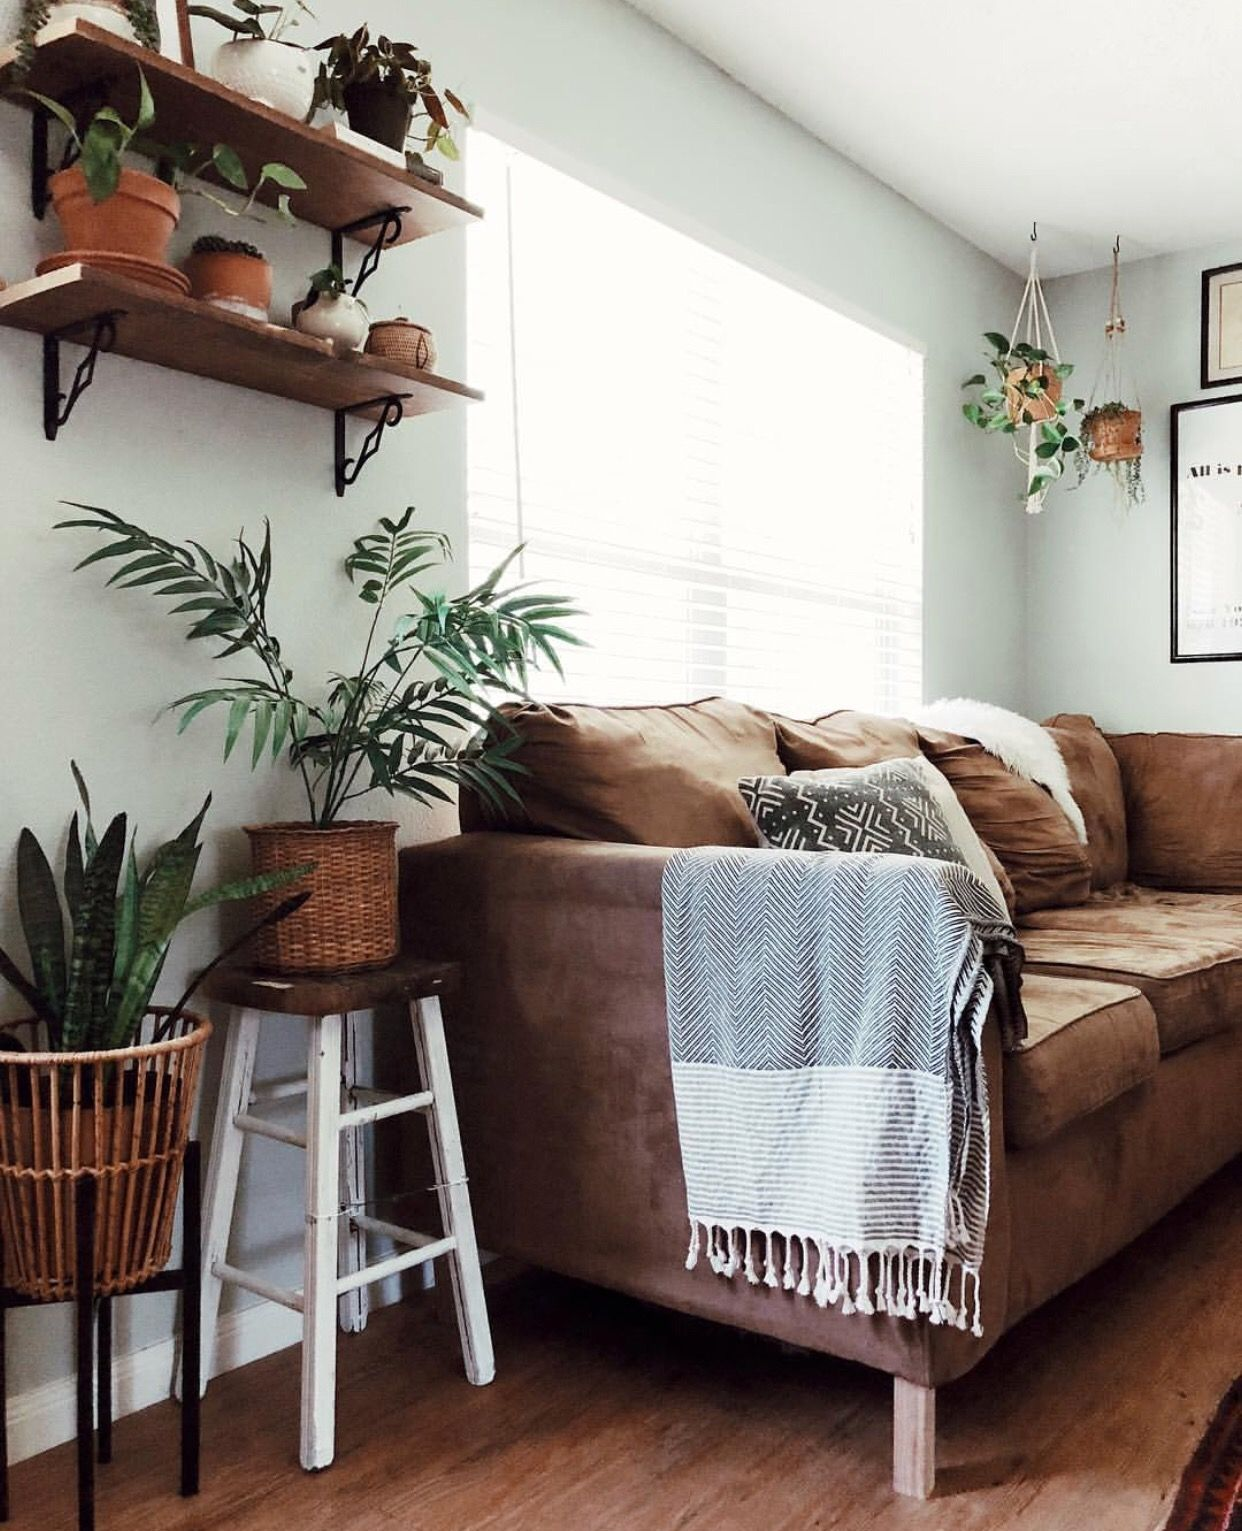 Boho Decor Style Neutral Colors And Greenery Home Decor Home Decor Styles Boho Living Room